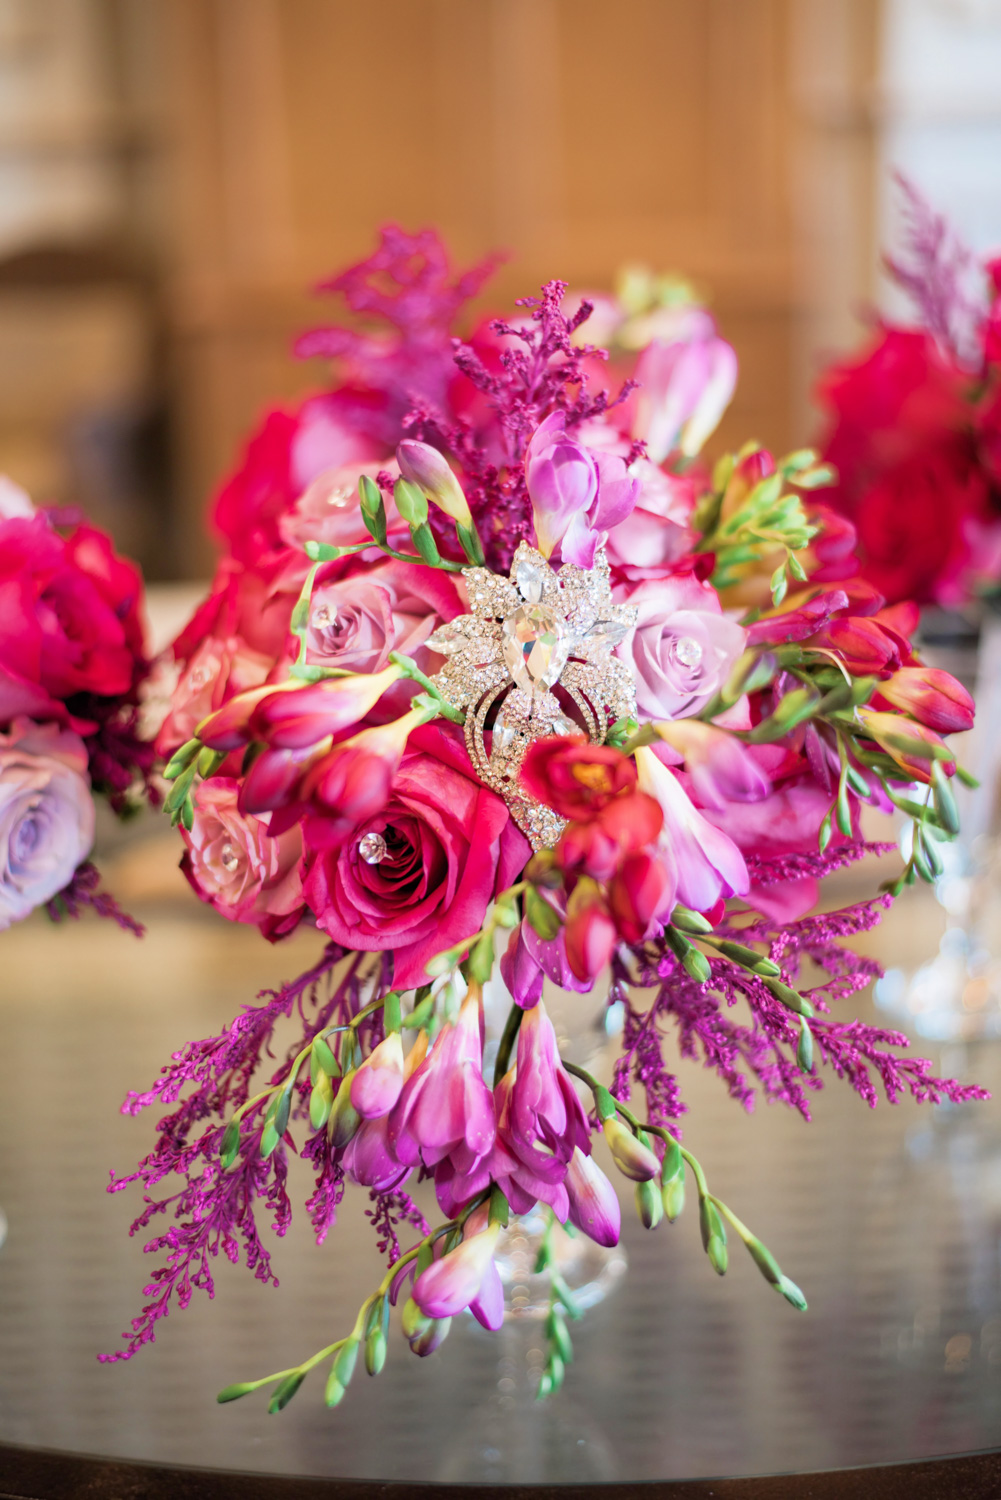 Handmade spring wedding flower bouquets put together by bride's family.